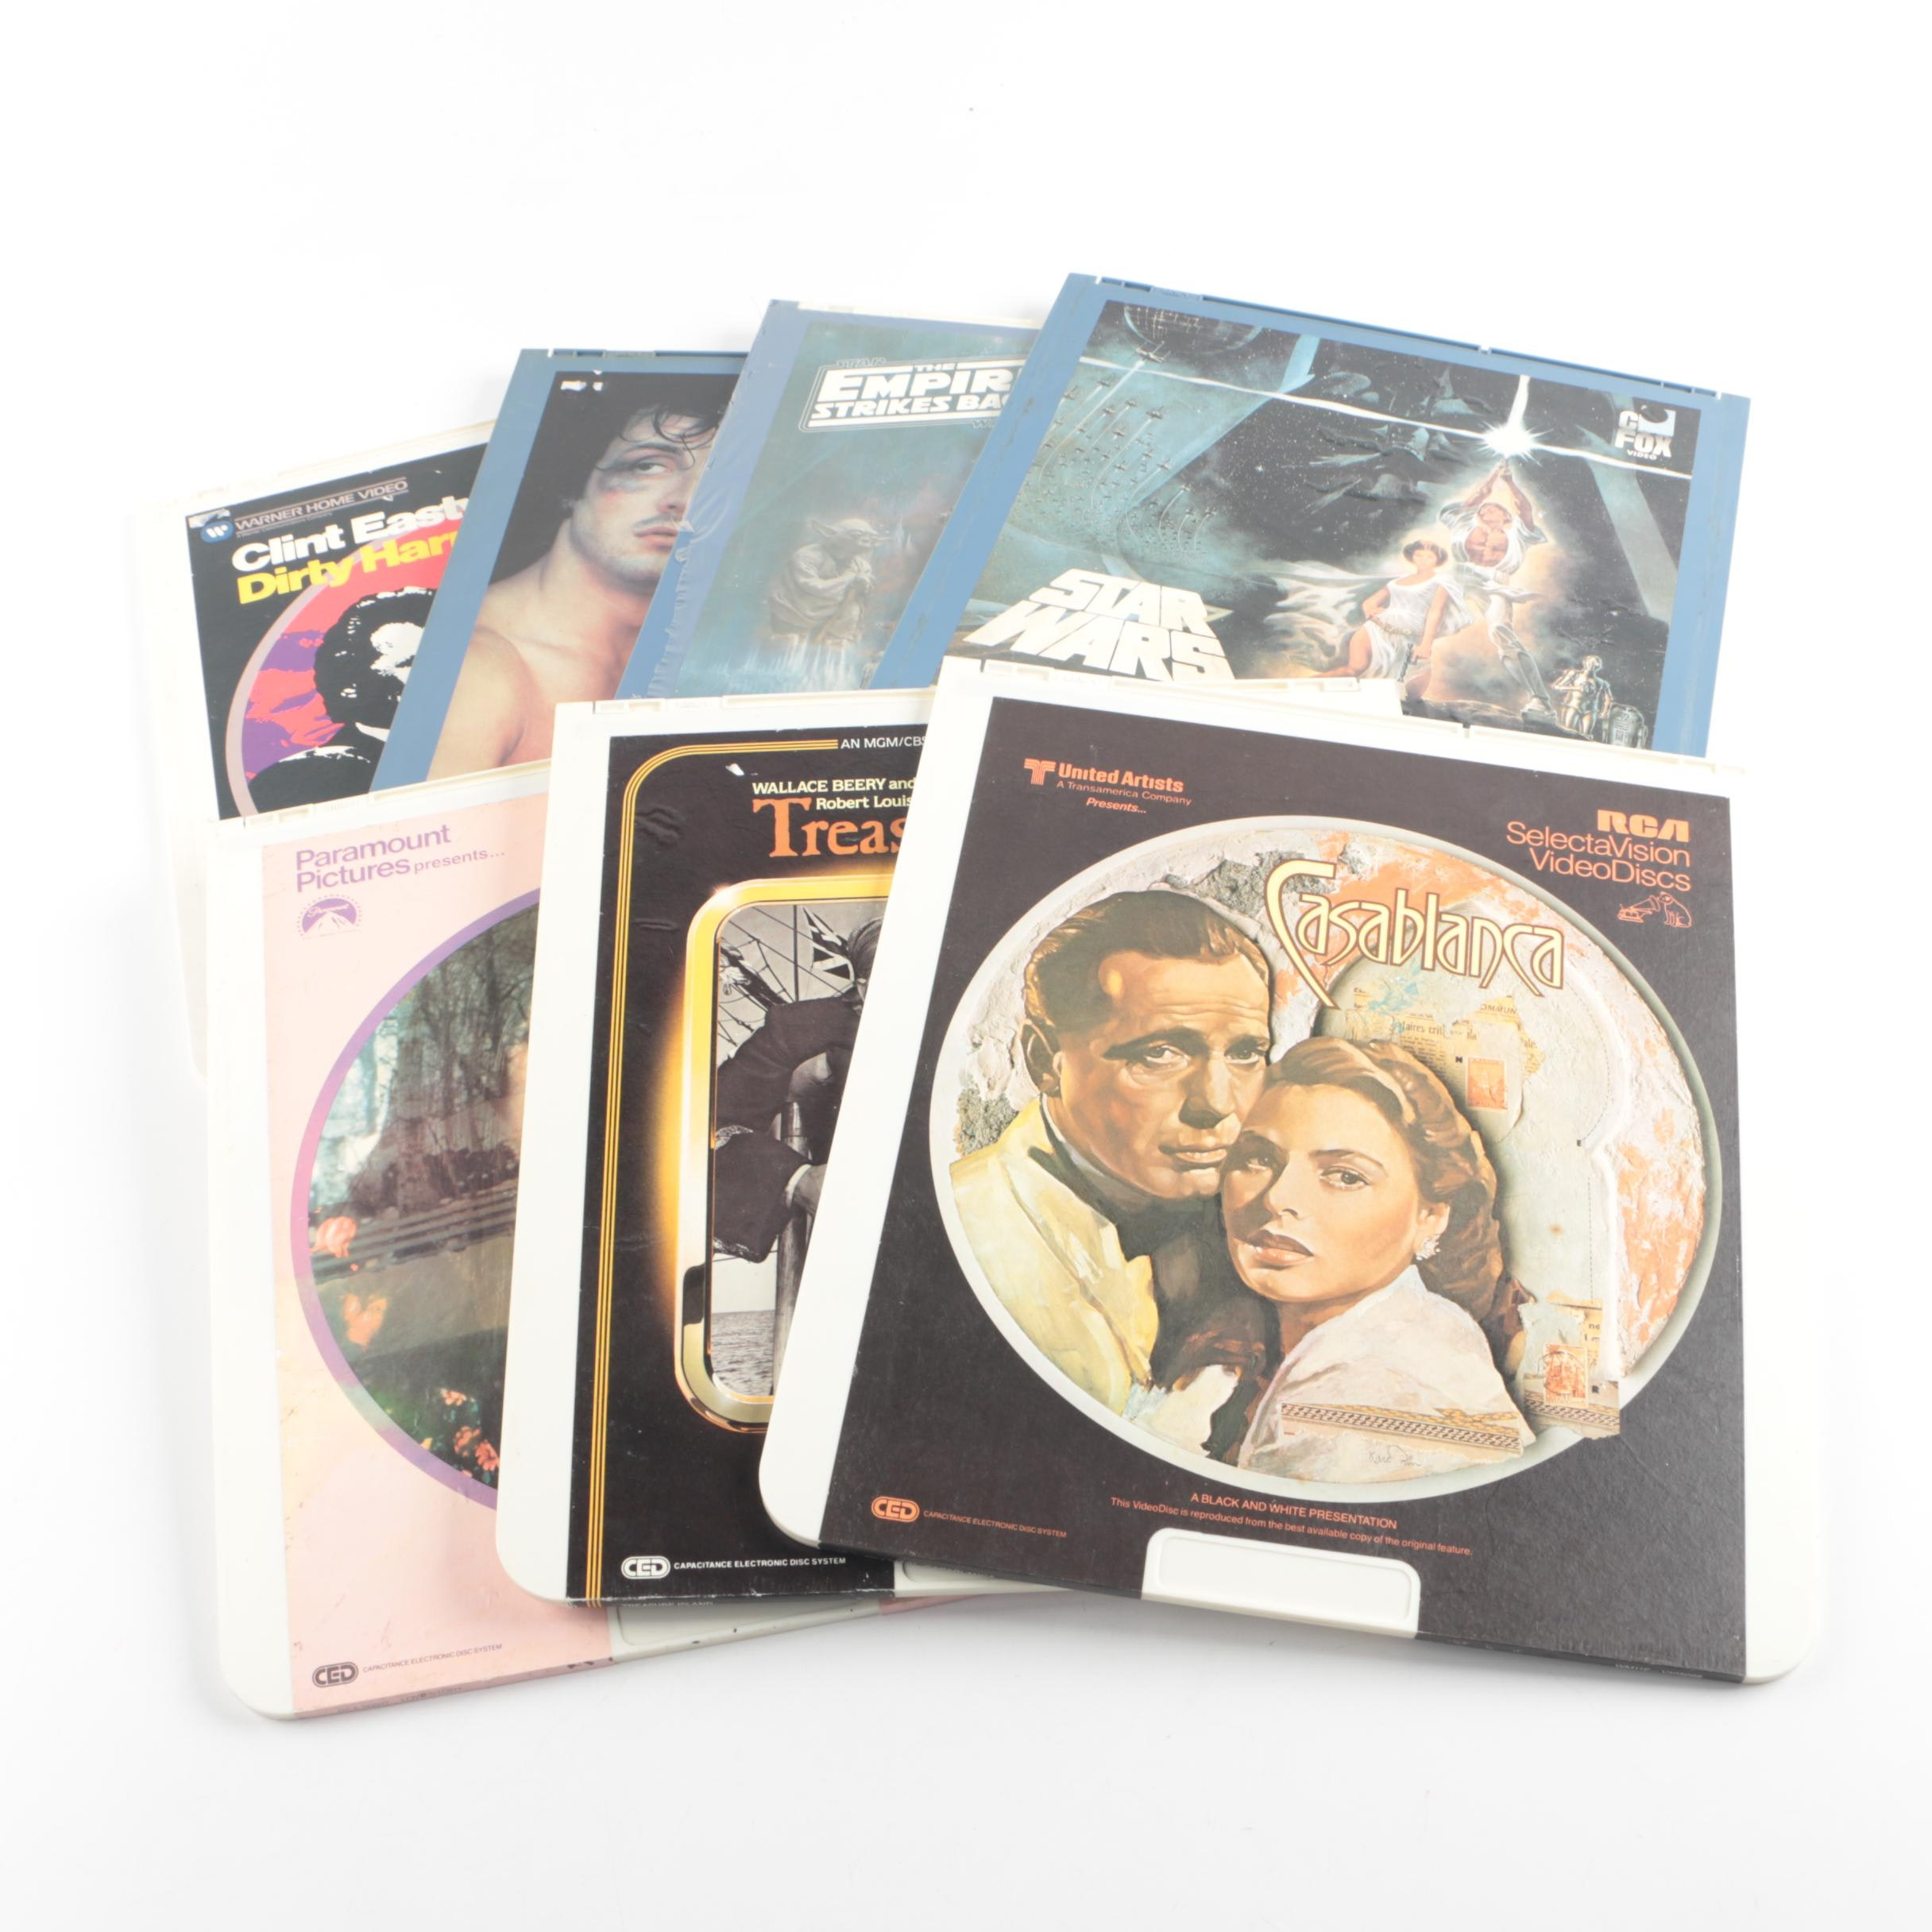 """1980s CED Video Discs, Including """"Star Wars"""" and """"The Empire Strikes Back"""""""